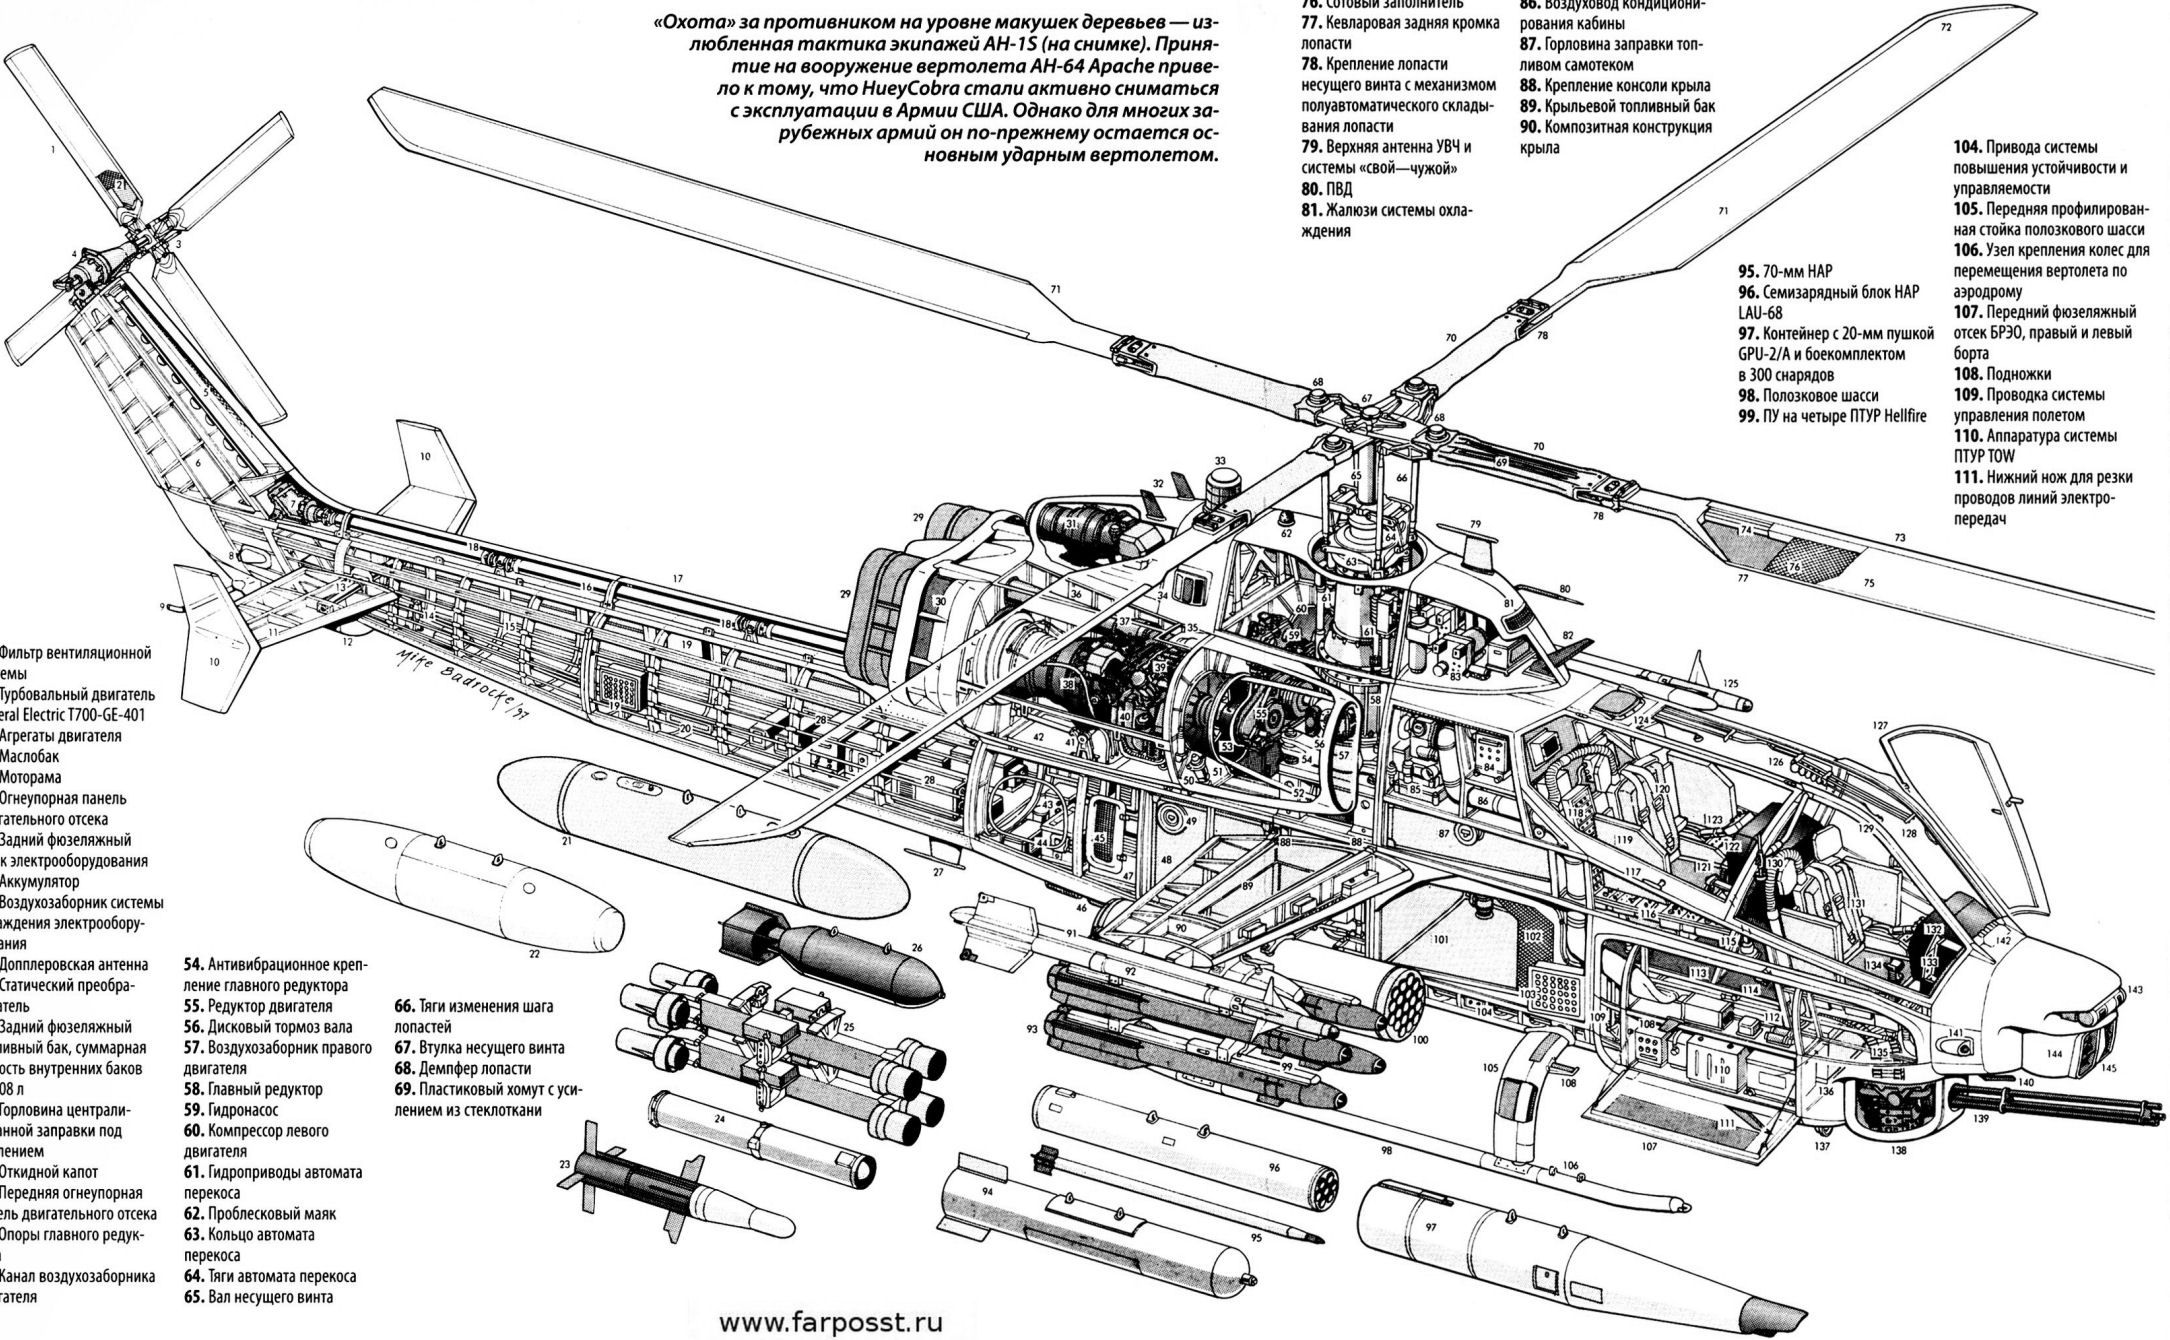 ah-1w cutaway attack helicopter, military helicopter, military aircraft,  military weapons,